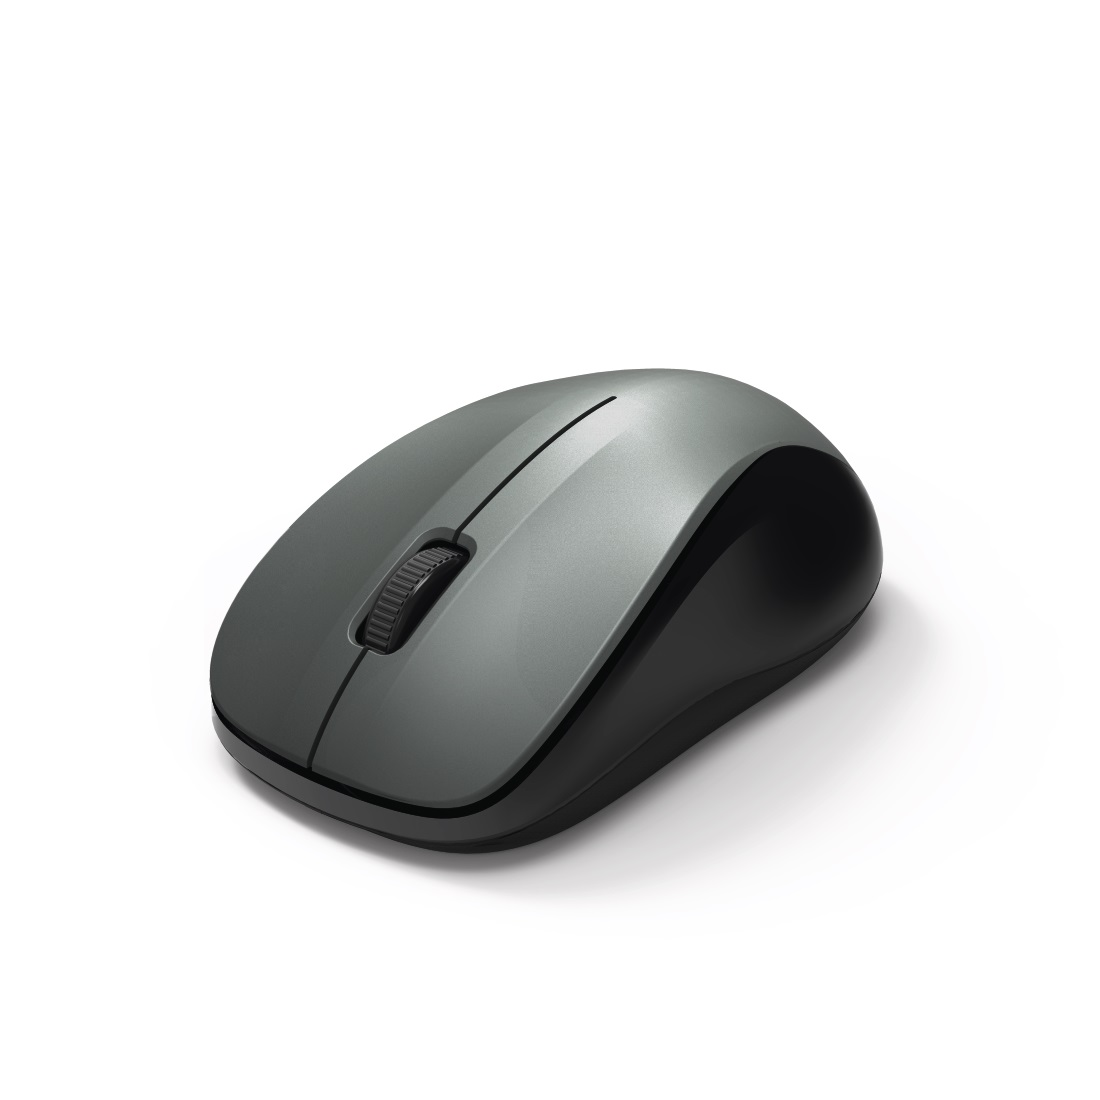 HAMA MW-300 Optical Wireless Mouse 3 Buttons anthracite